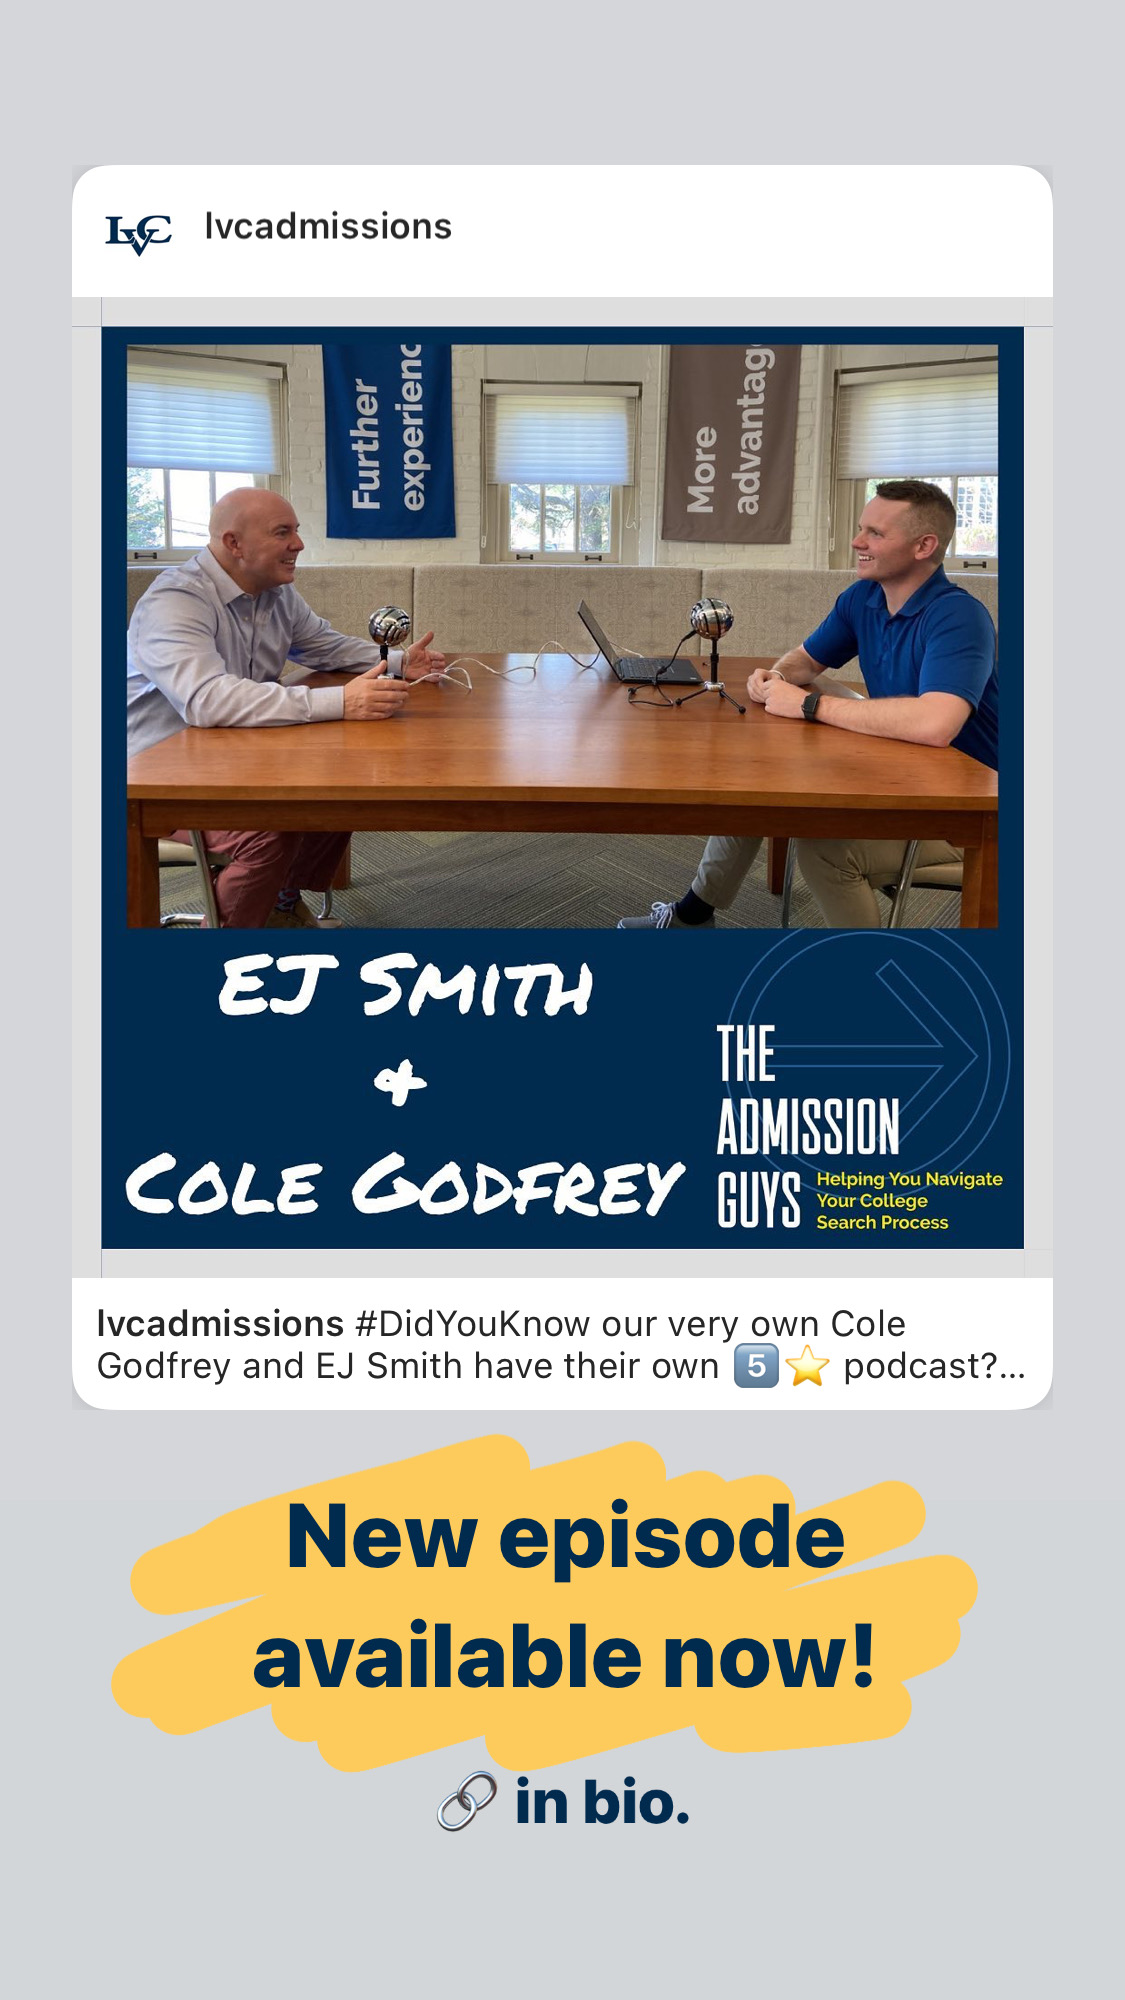 Admission Guys Podcast